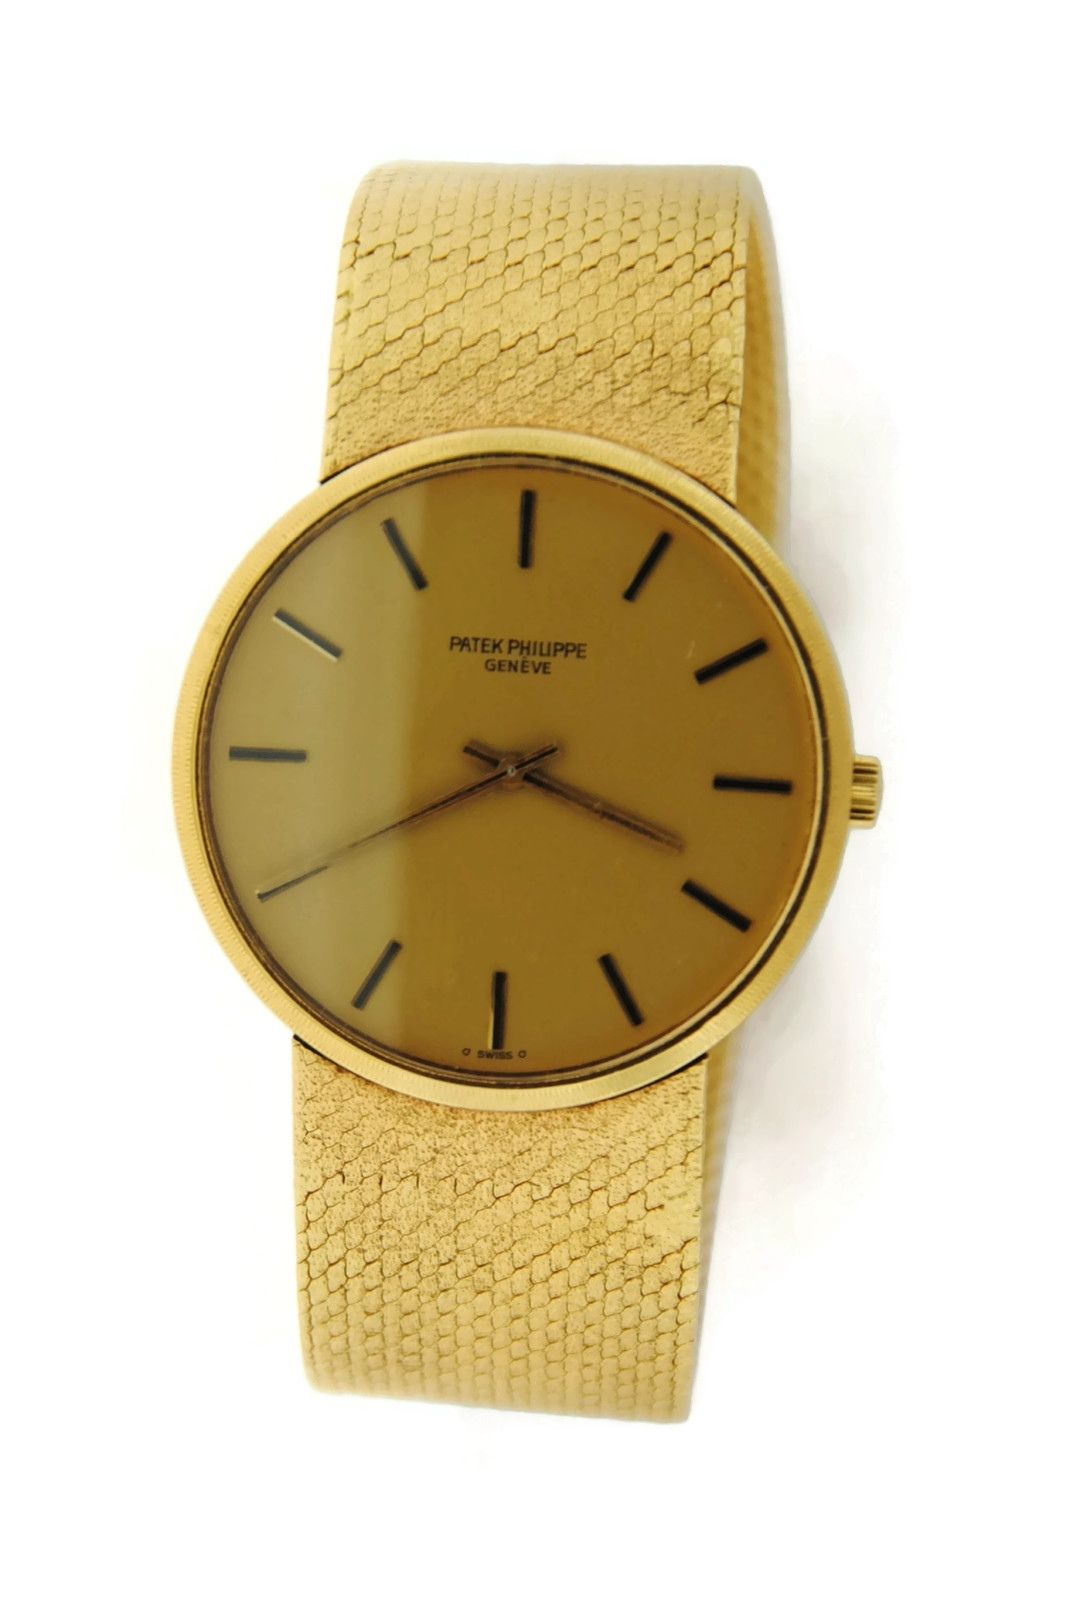 Patek Philippe Calatrava 18K Yellow Gold Watch